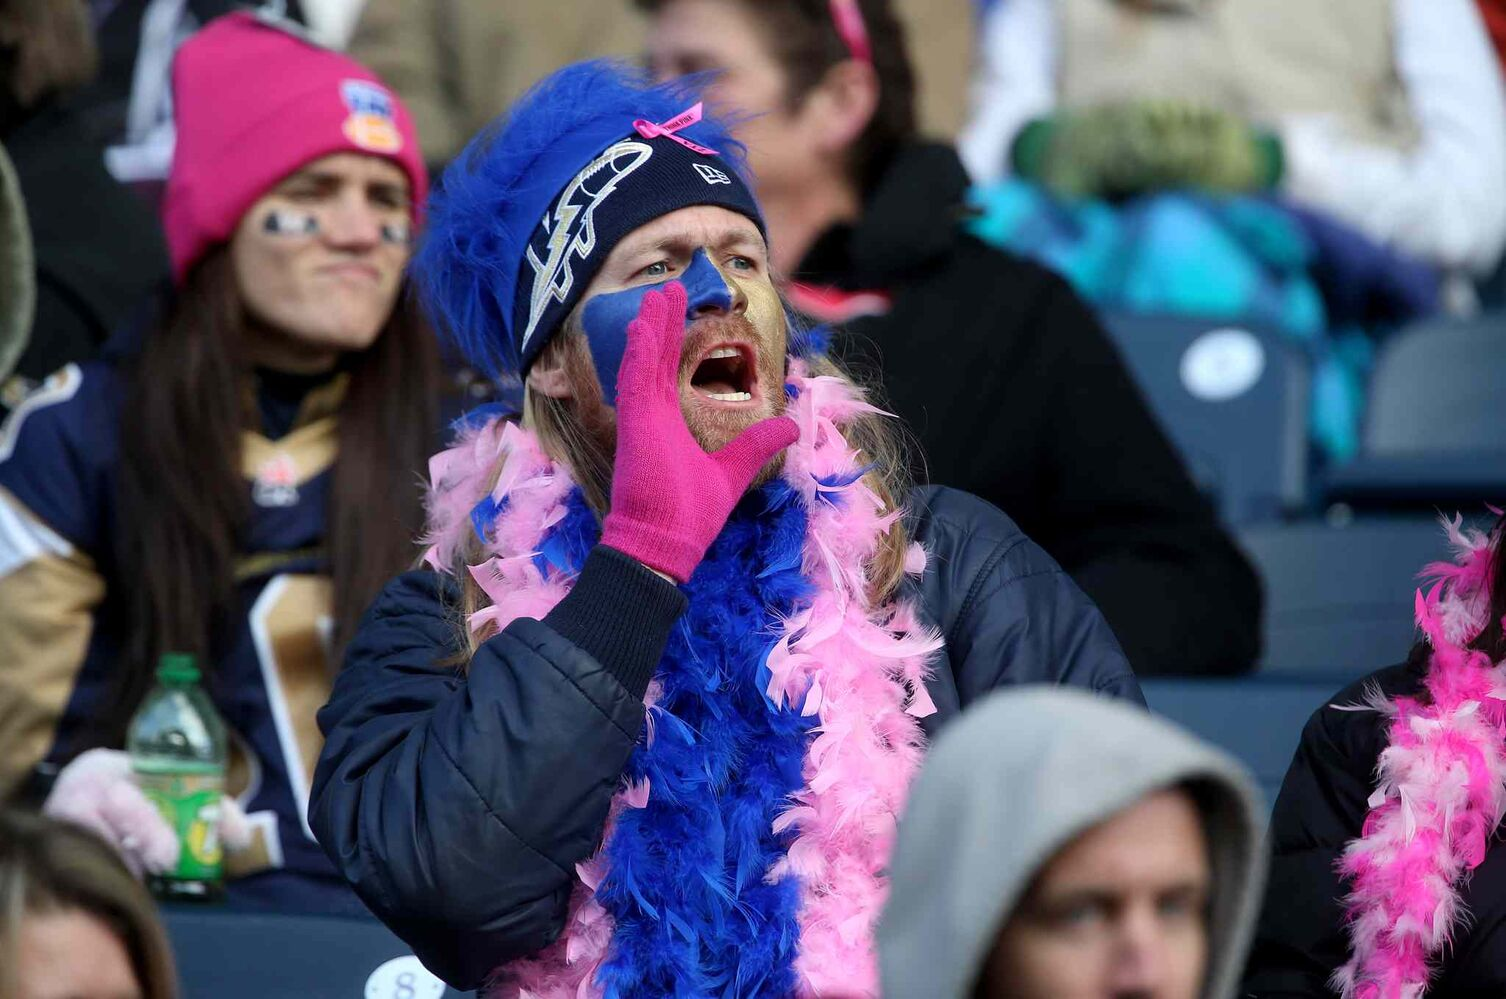 A Winnipeg Blue Bombers fan lets the team know how he feels.